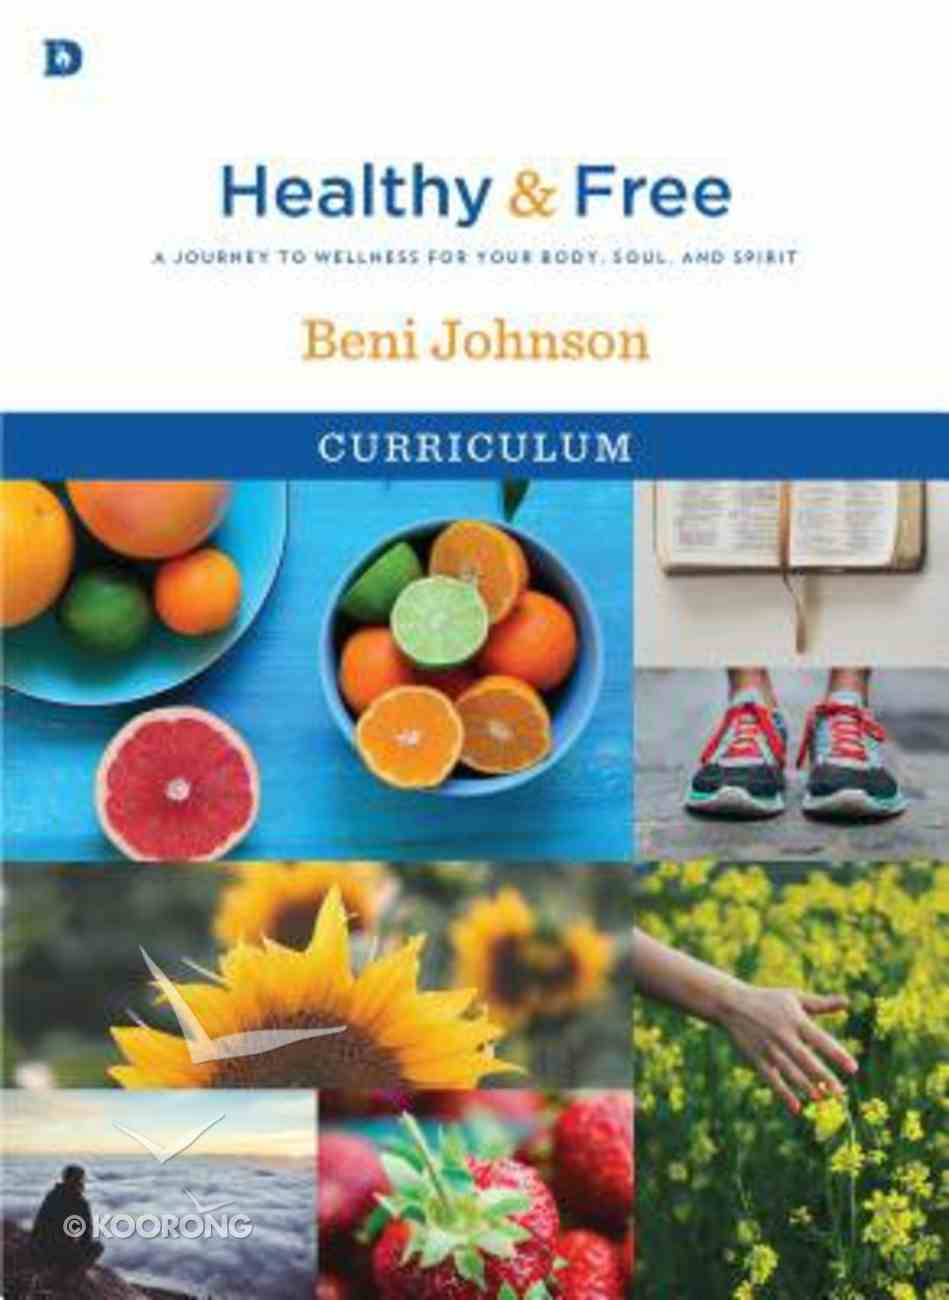 Healthy and Free: A Journey to Wellness For Your Body, Soul, and Spirit (Curriculum) Pack